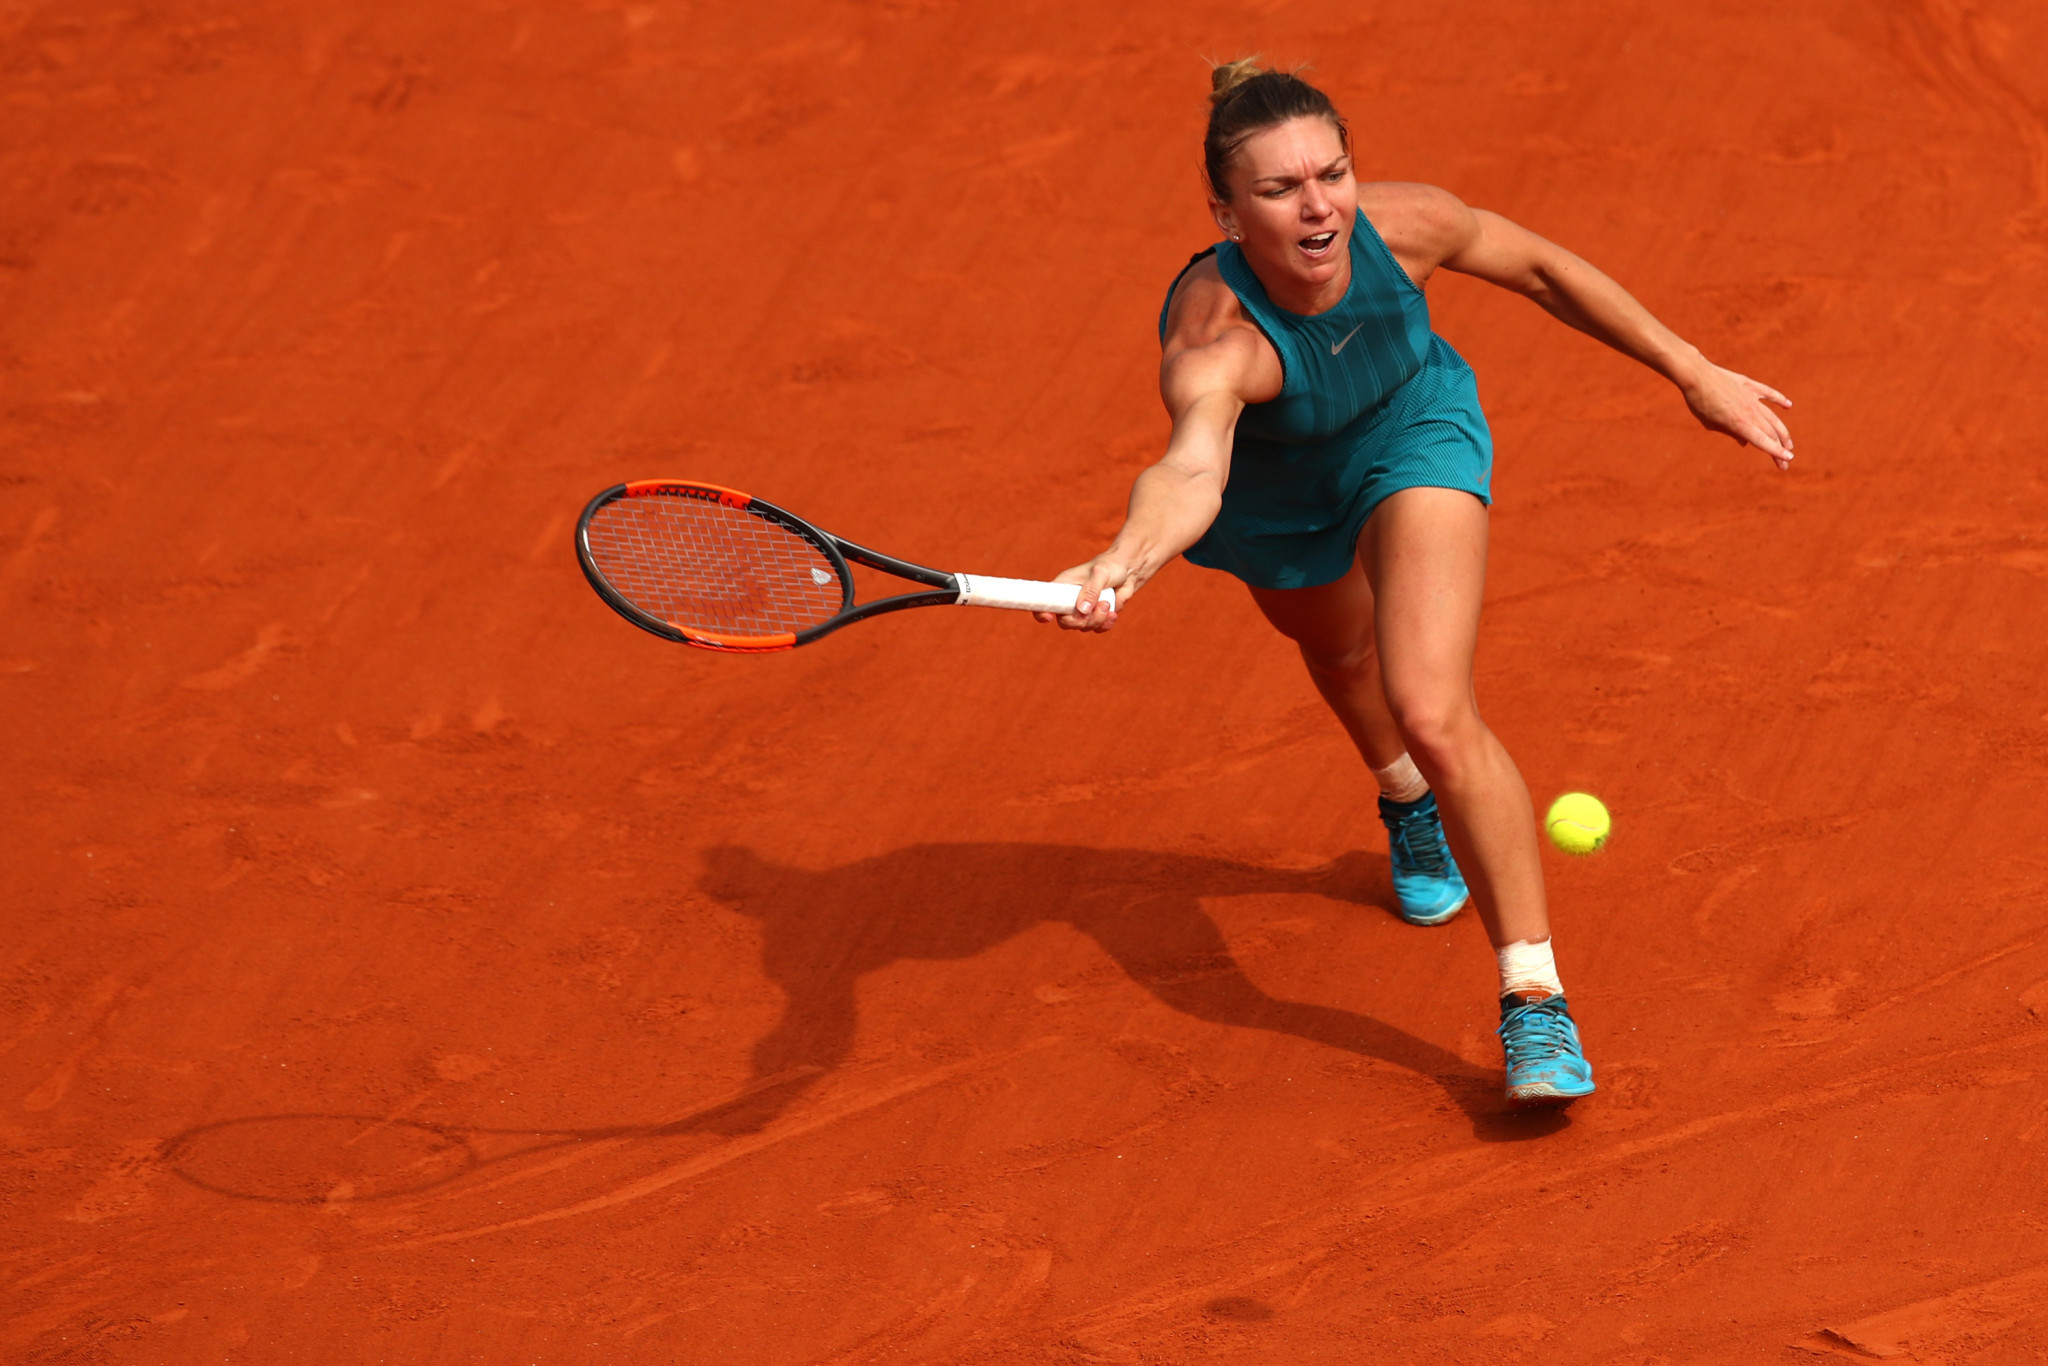 Halep clinches first Grand Slam title with three-set victory over Stephens at French Open